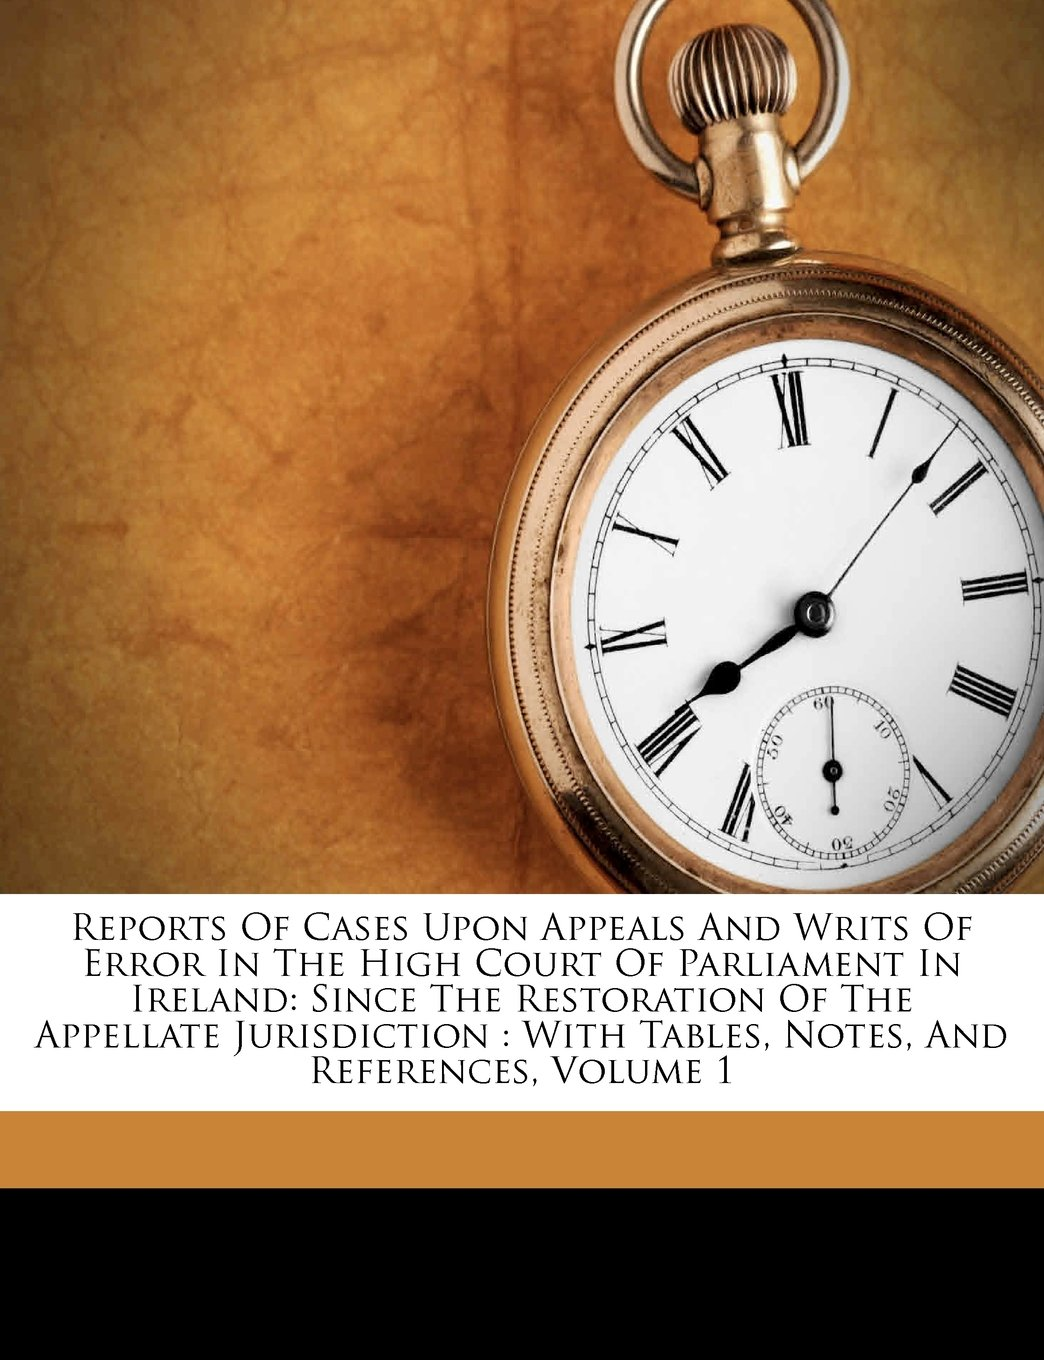 Reports Of Cases Upon Appeals And Writs Of Error In The High Court Of Parliament In Ireland: Since The Restoration Of The Appellate Jurisdiction : With Tables, Notes, And References, Volume 1 pdf